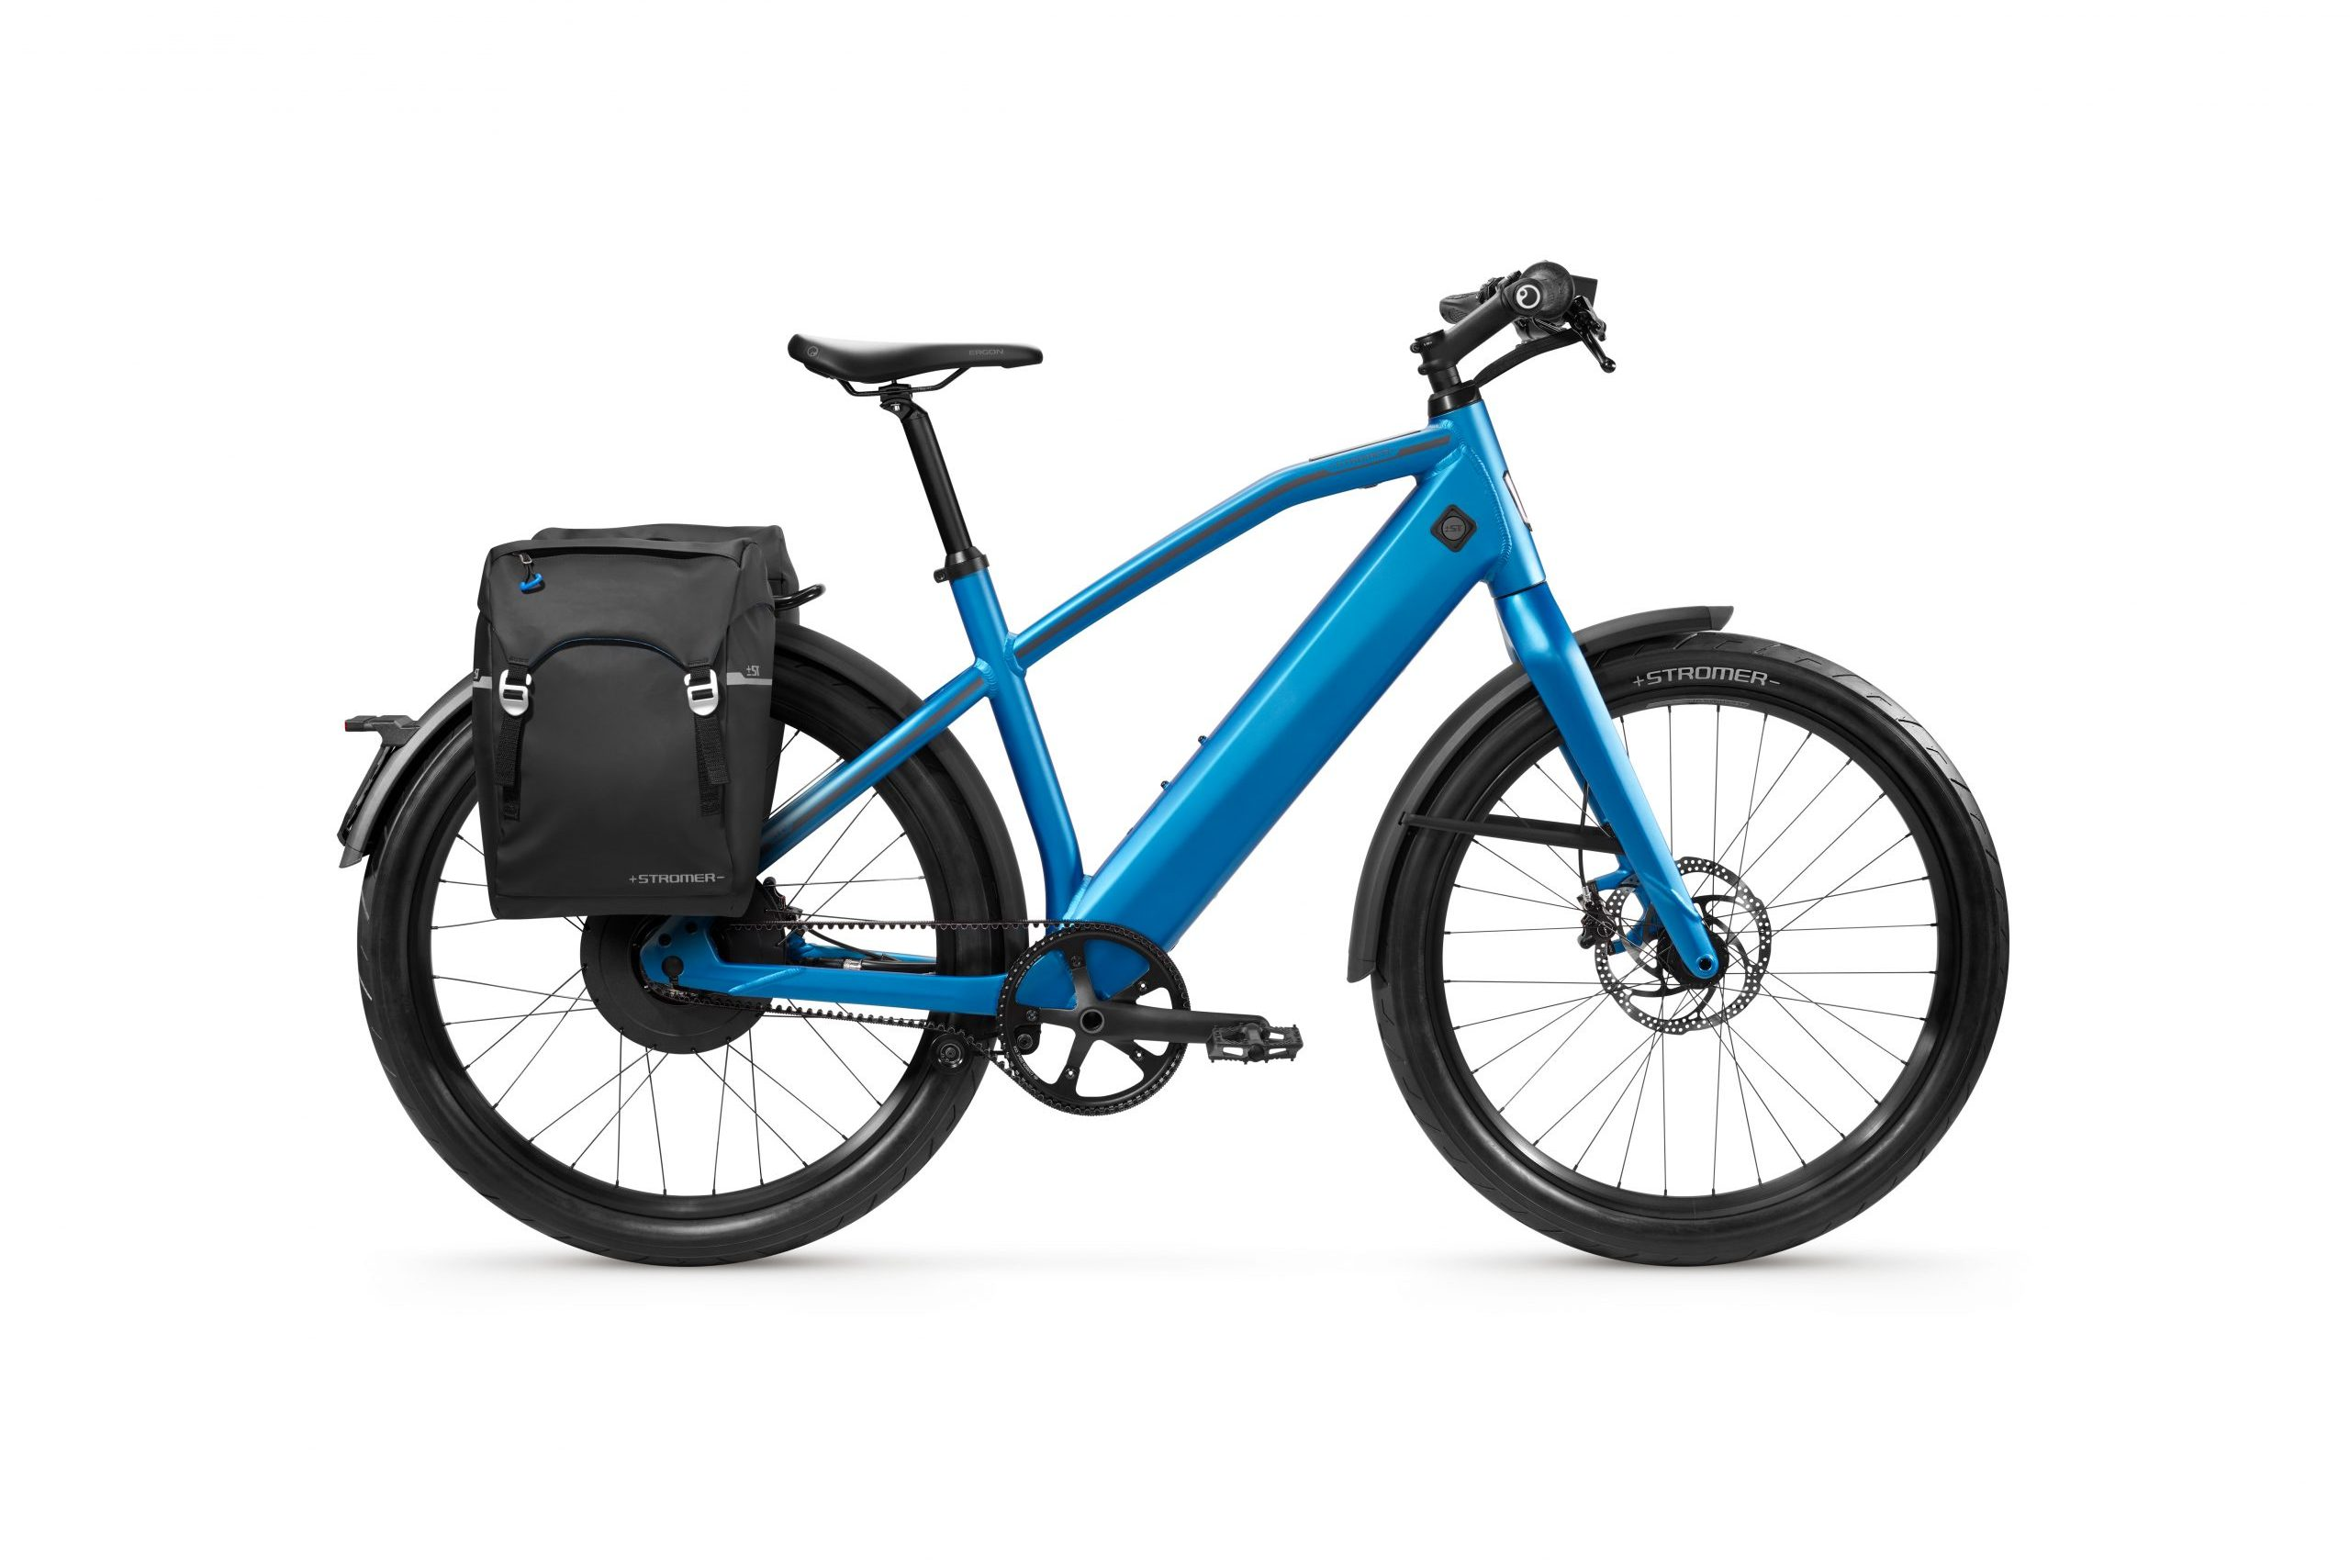 Stromer ST2 Royal Blue Limited Edition met Stromer tas